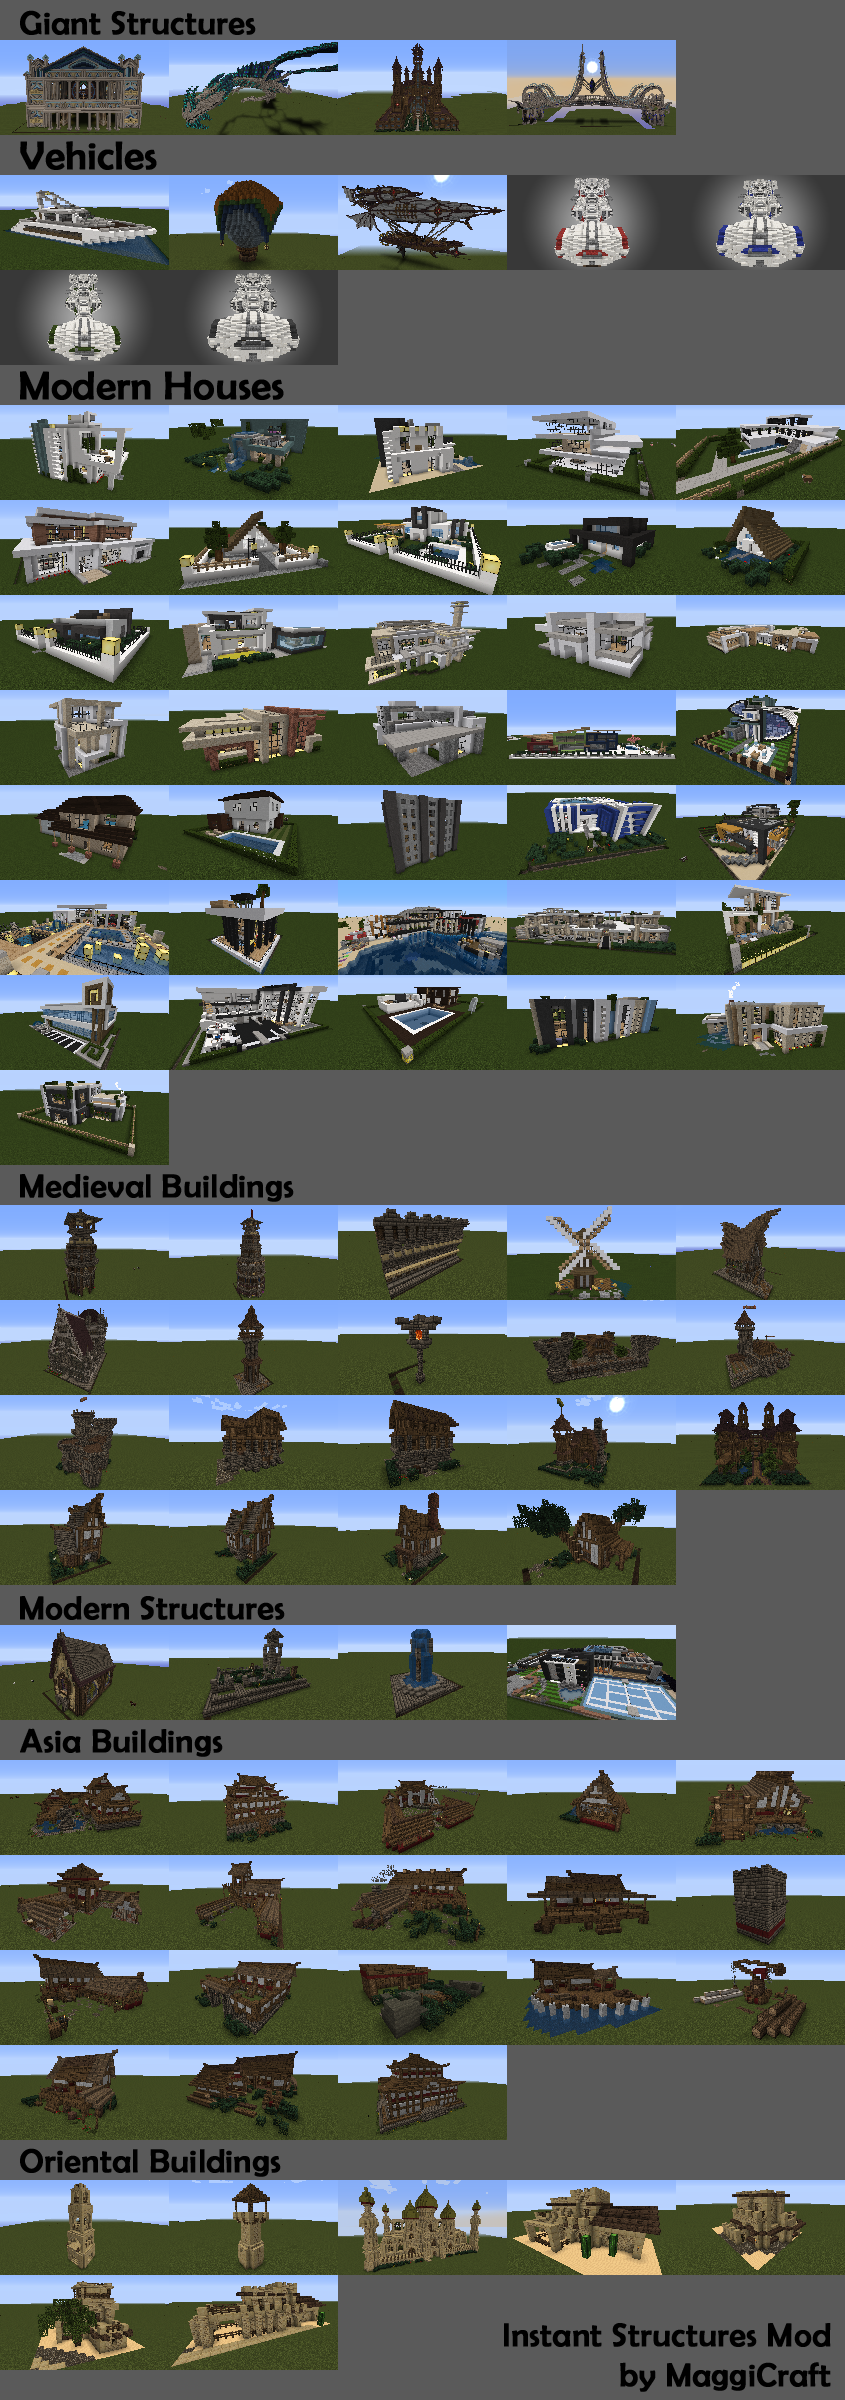 Instant Structures Мод 1.12.2, 1.11.2, 1.10.2, 1.9.x, 1.8, 1.7.x